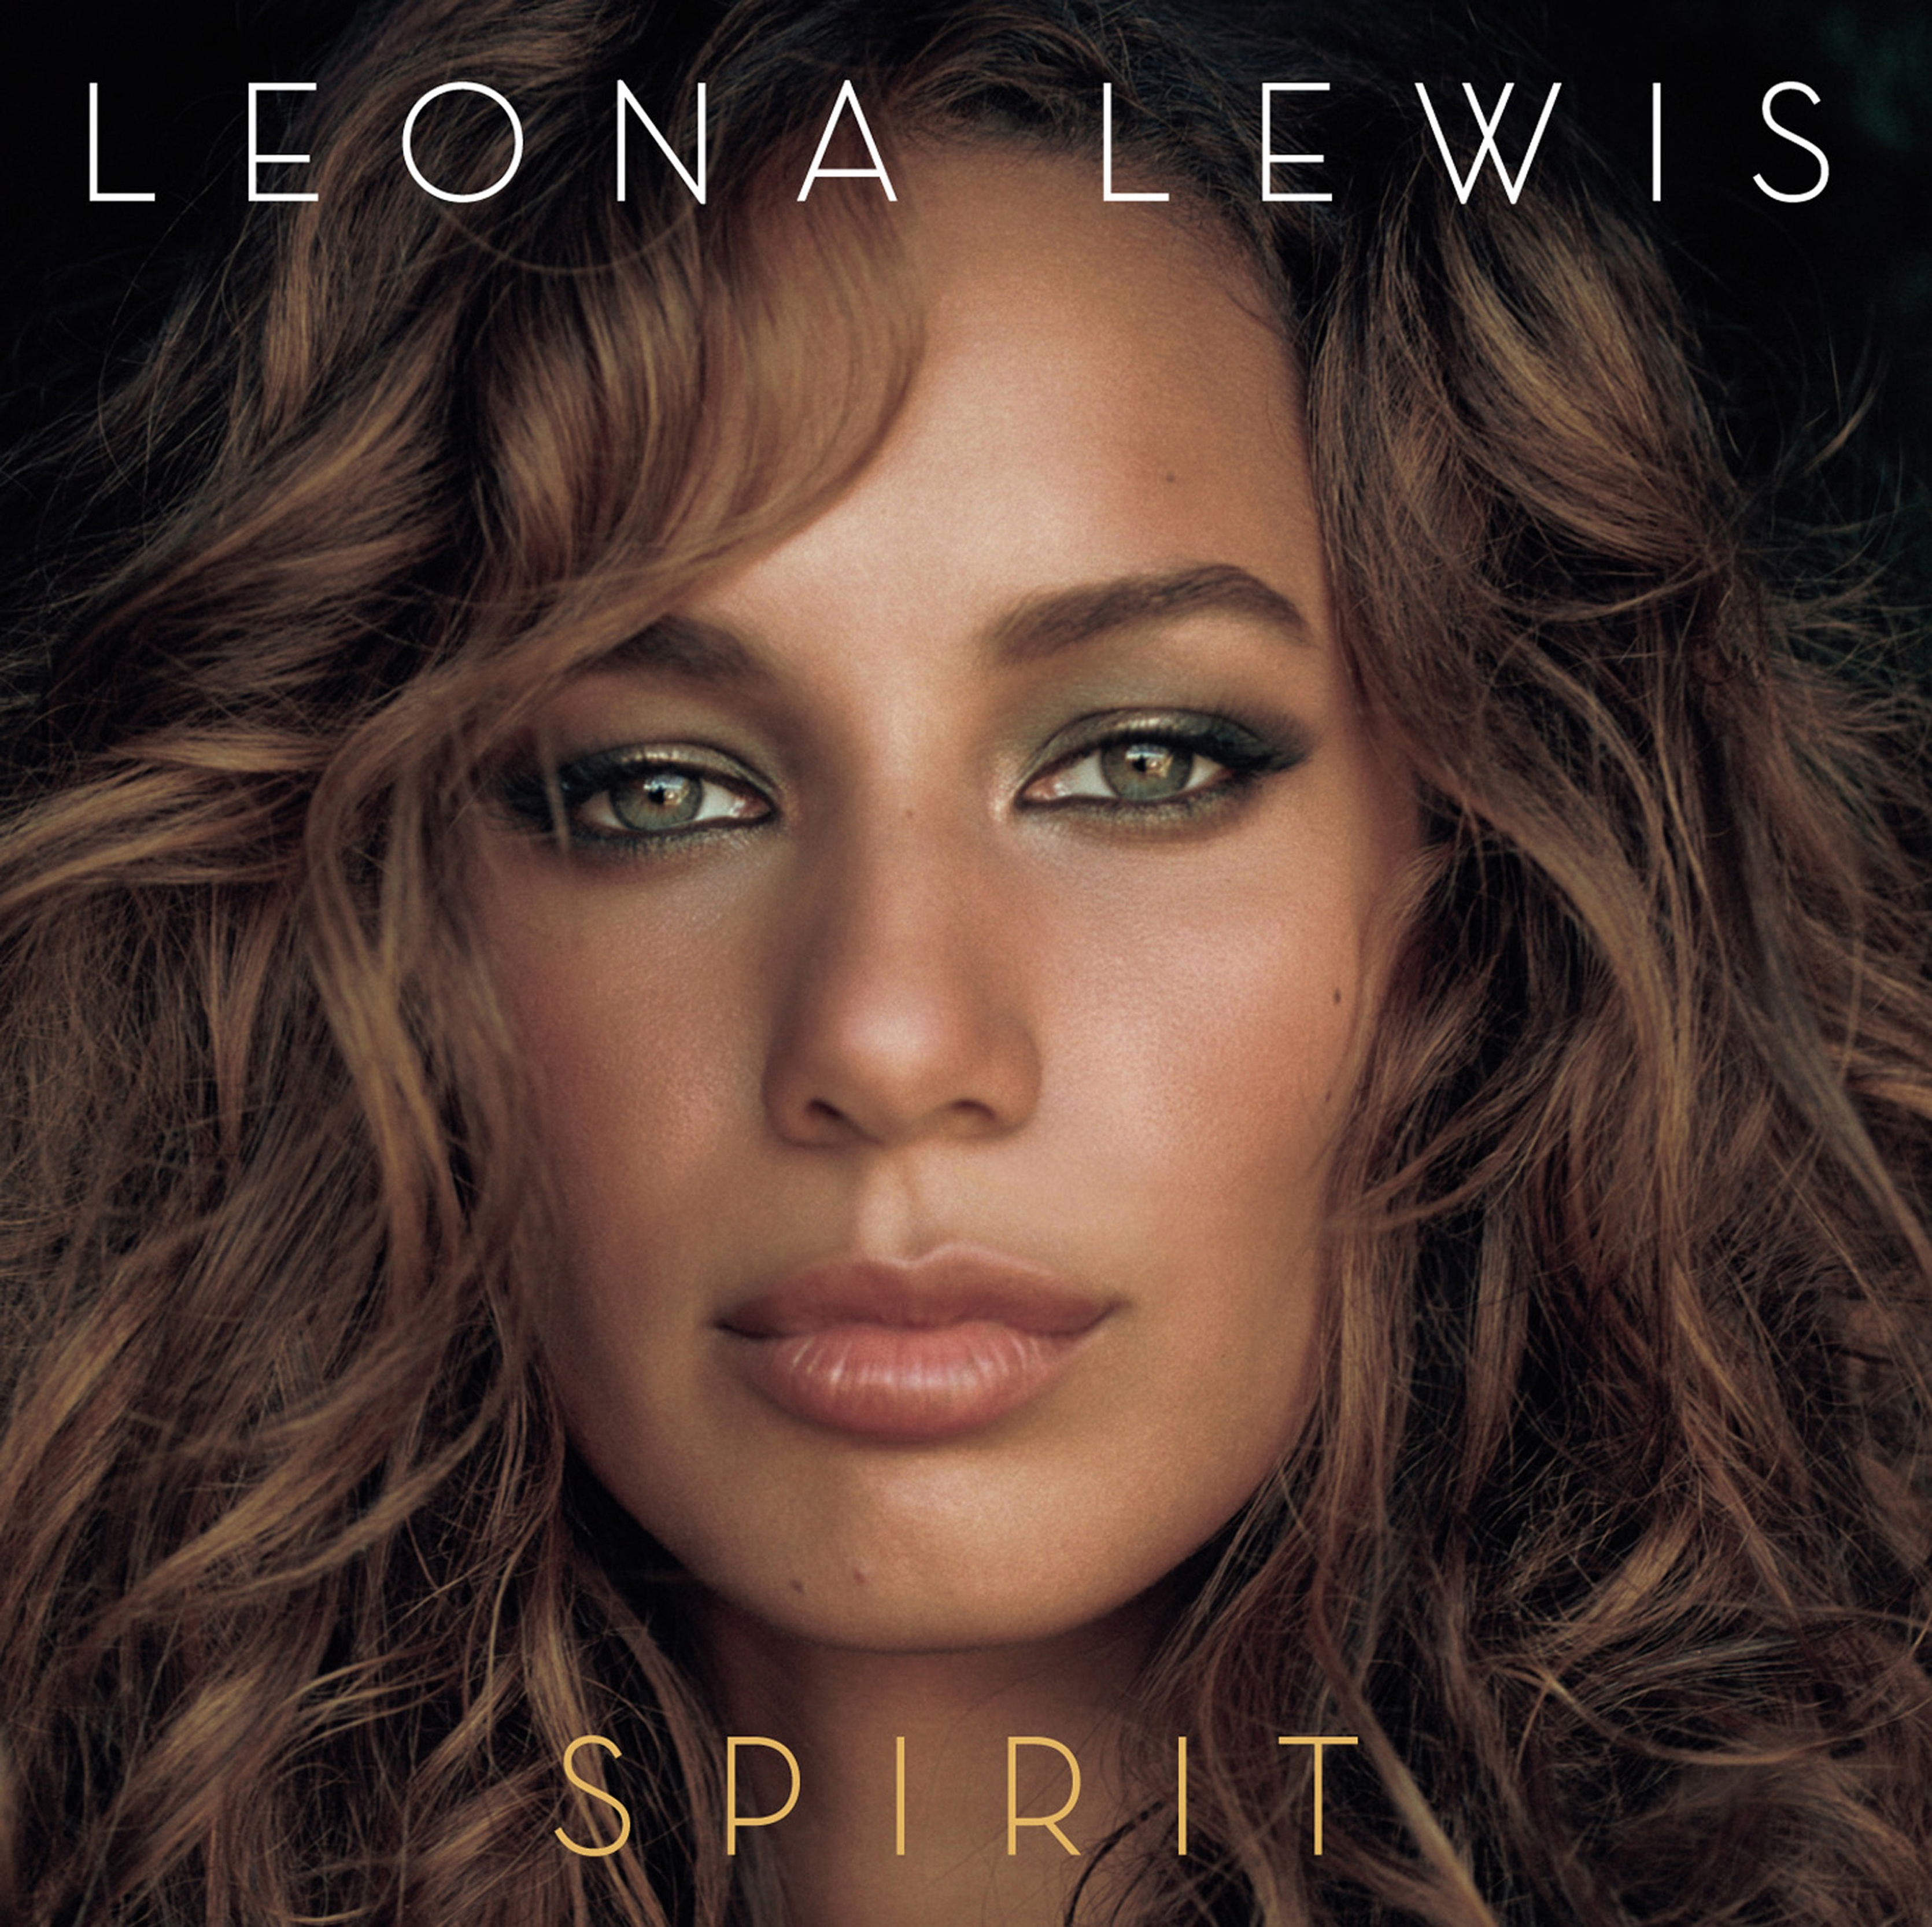 Leona Lewis - Photo Actress